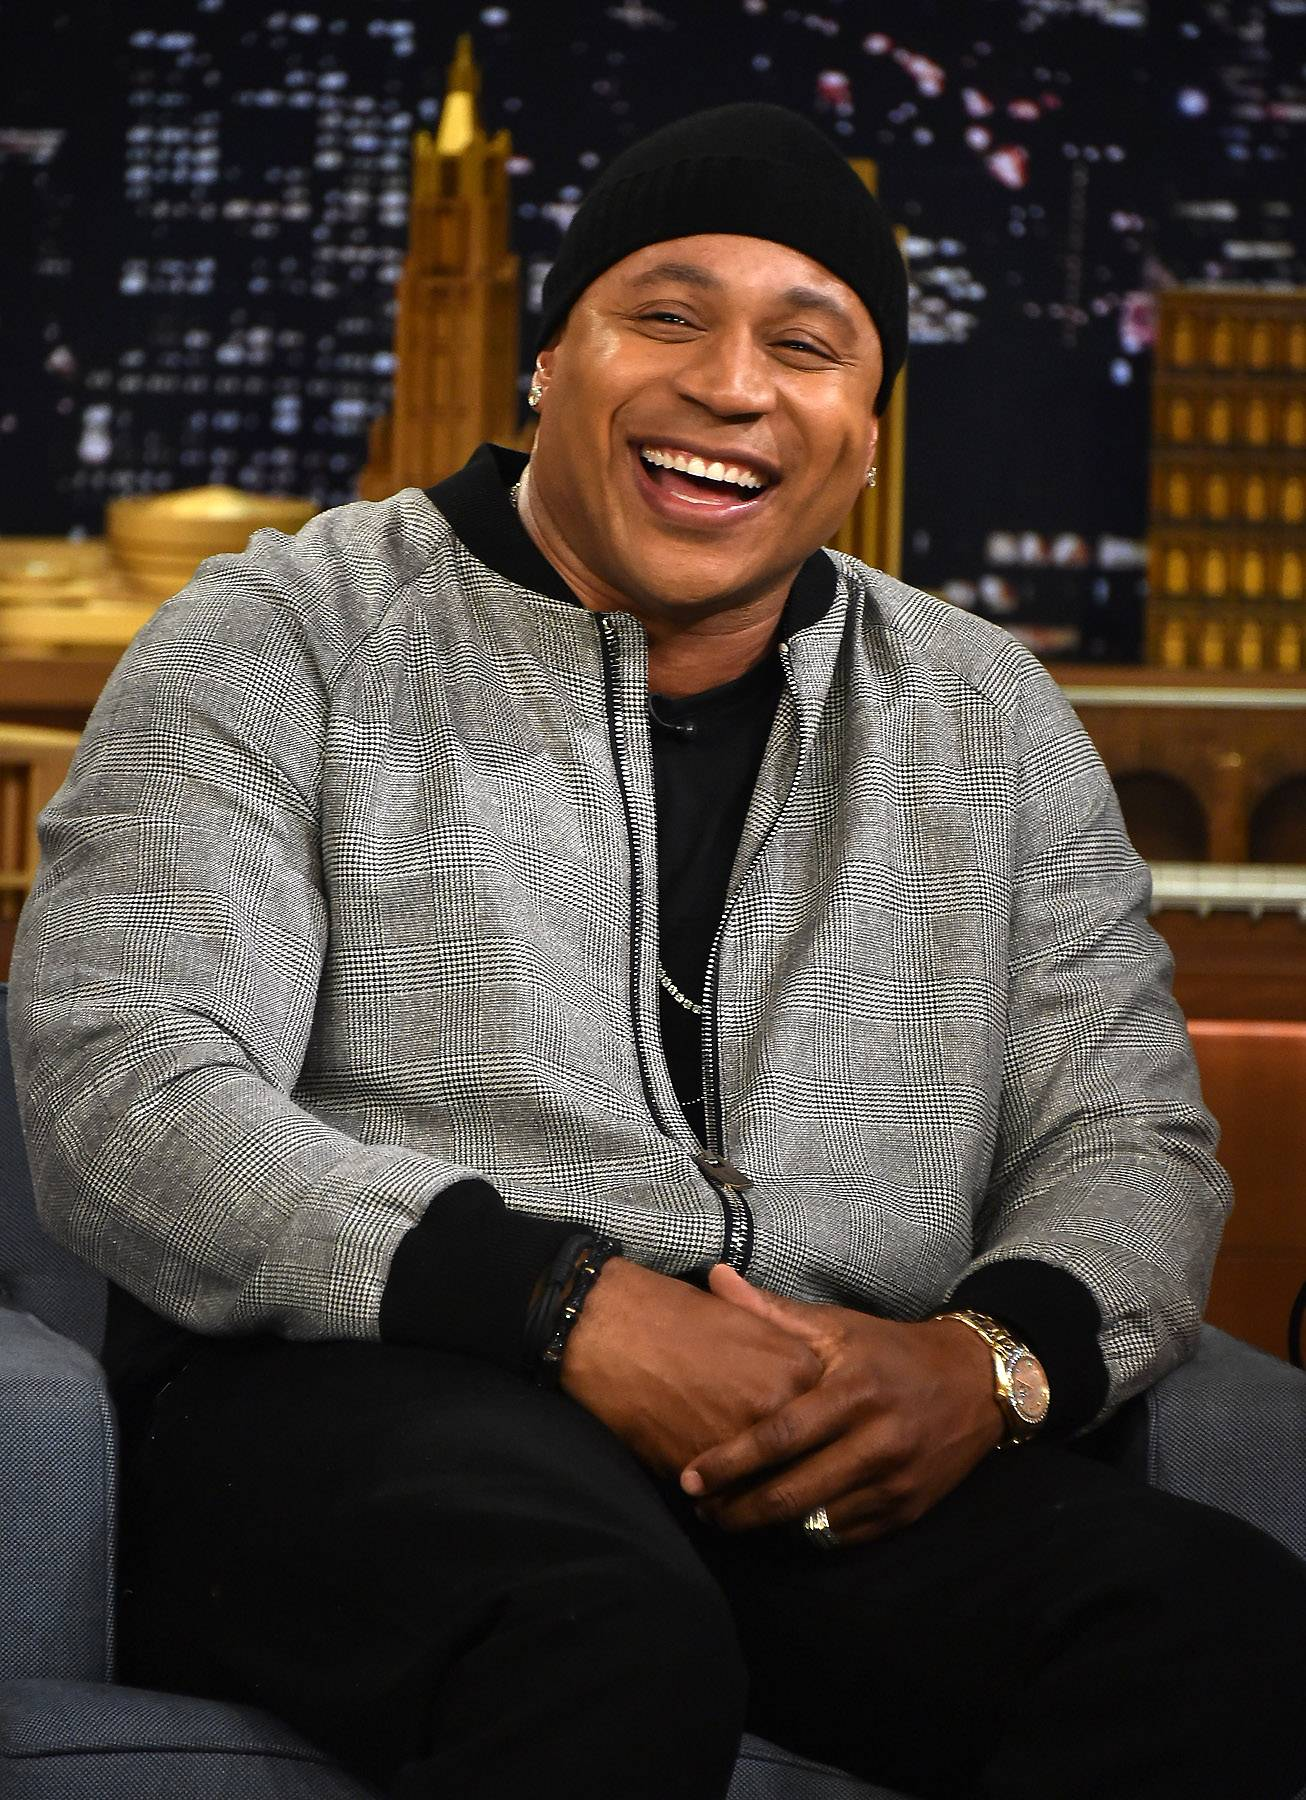 """LL Cool J, 'Big Mama (Unconditional Love)'  - Mr. Smith was primarily raised by his granny, Ellen Griffin, who is the """"mama"""" in the track """"Mama Said Knock You Out."""" When the beautiful lady passed away in 2002, he dedicated the song """"Big Mama (Unconditional Love)"""" to her.  (Photo: Theo Wargo/NBC/Getty Images for """"The Tonight Show Starring Jimmy Fallon"""")"""